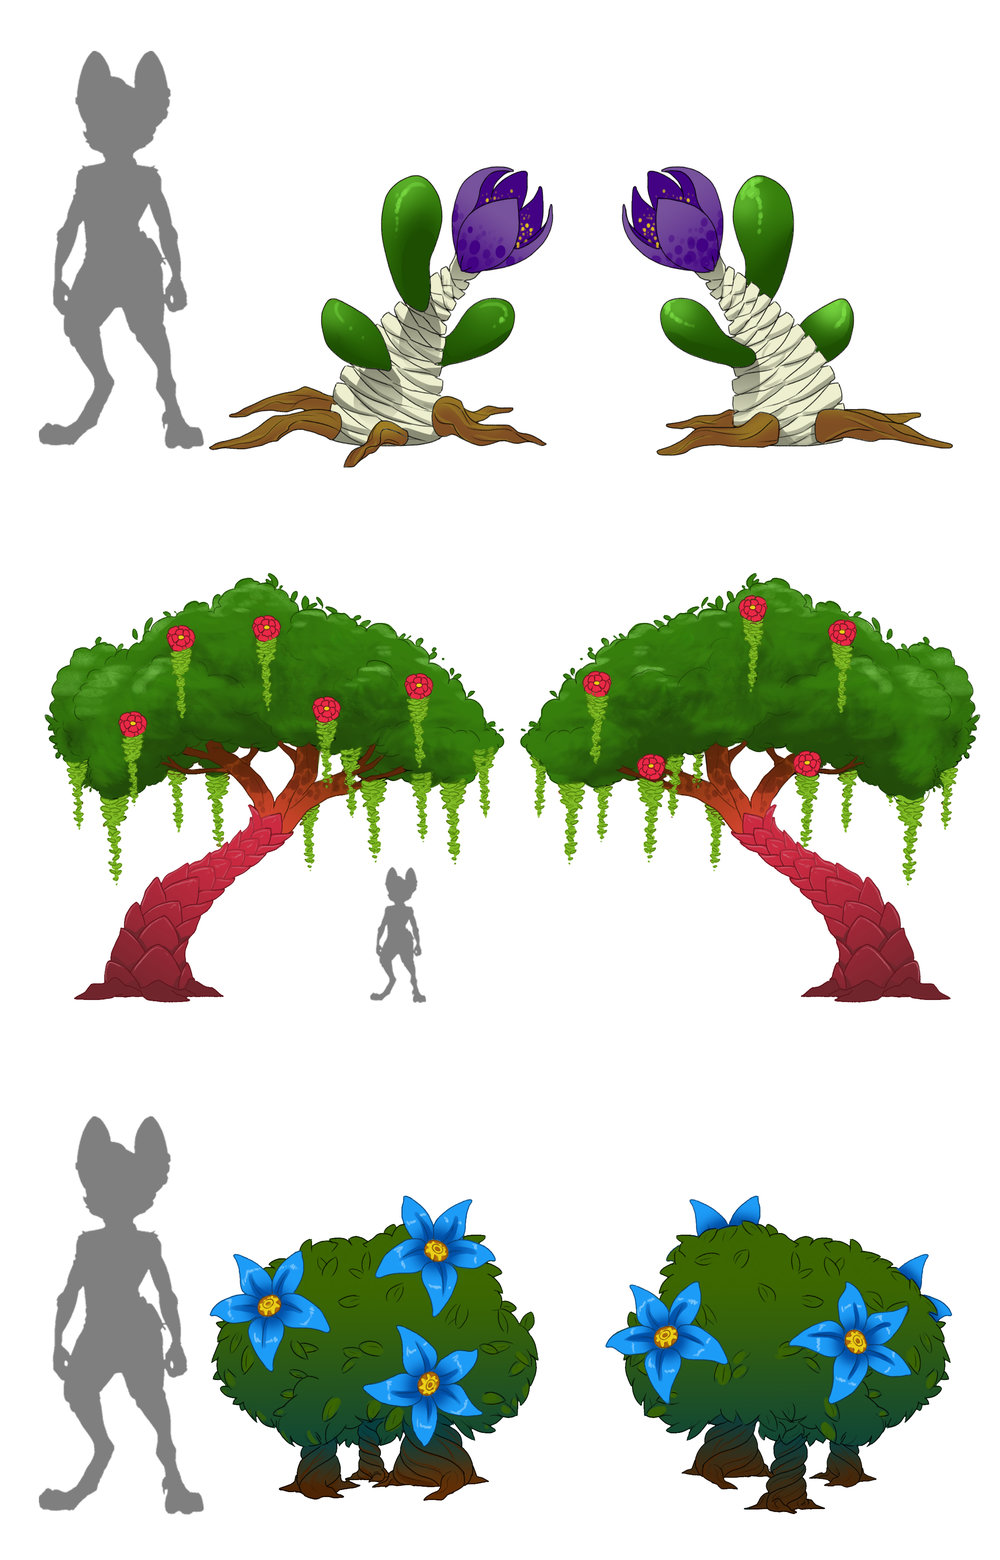 Final concept   The final design for the vegetation in-game